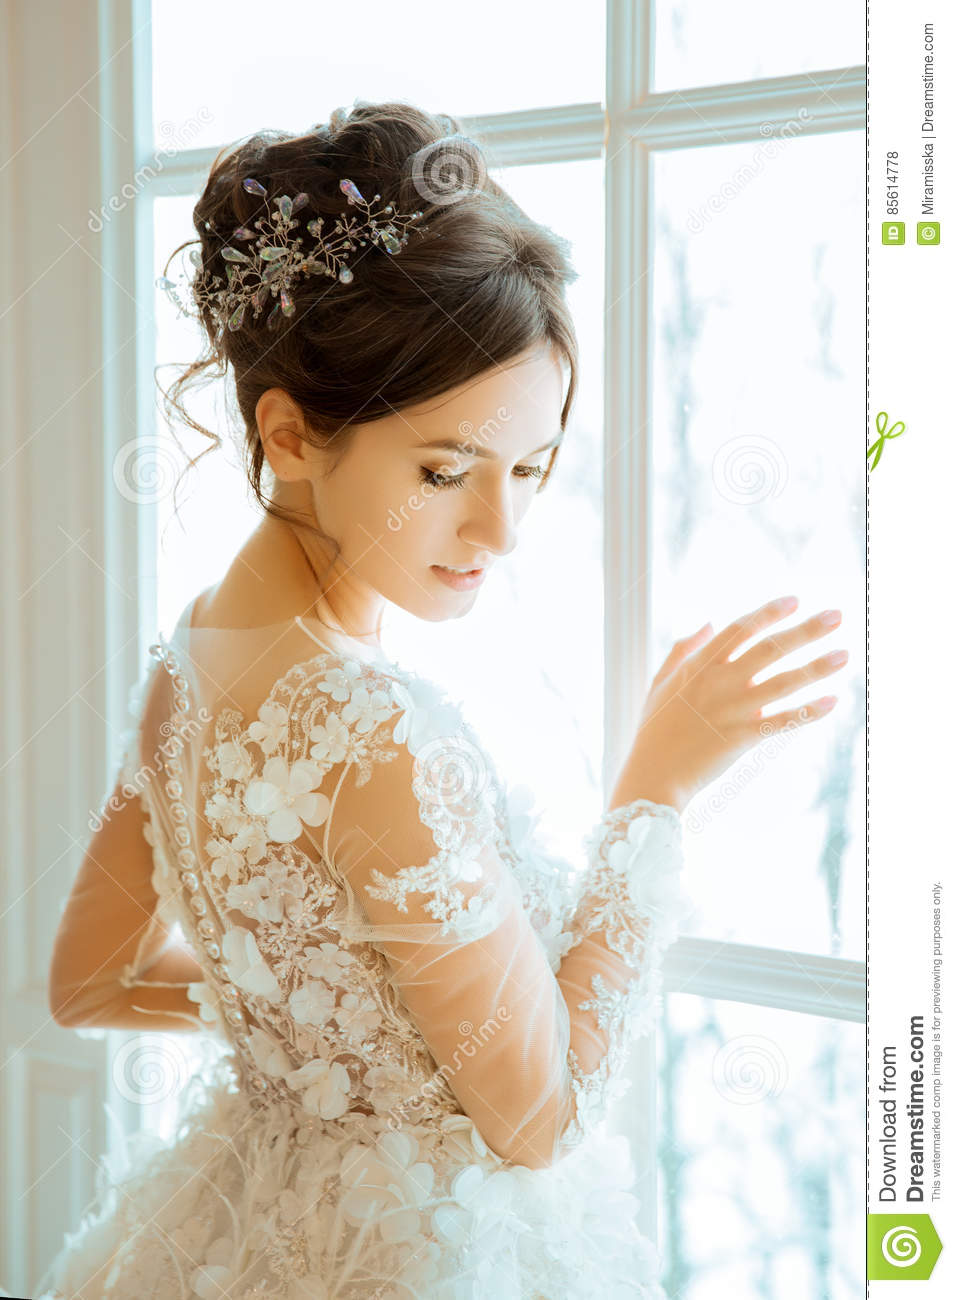 Bride. Wedding. The Bride In A Short Dress With Lace In The Crow